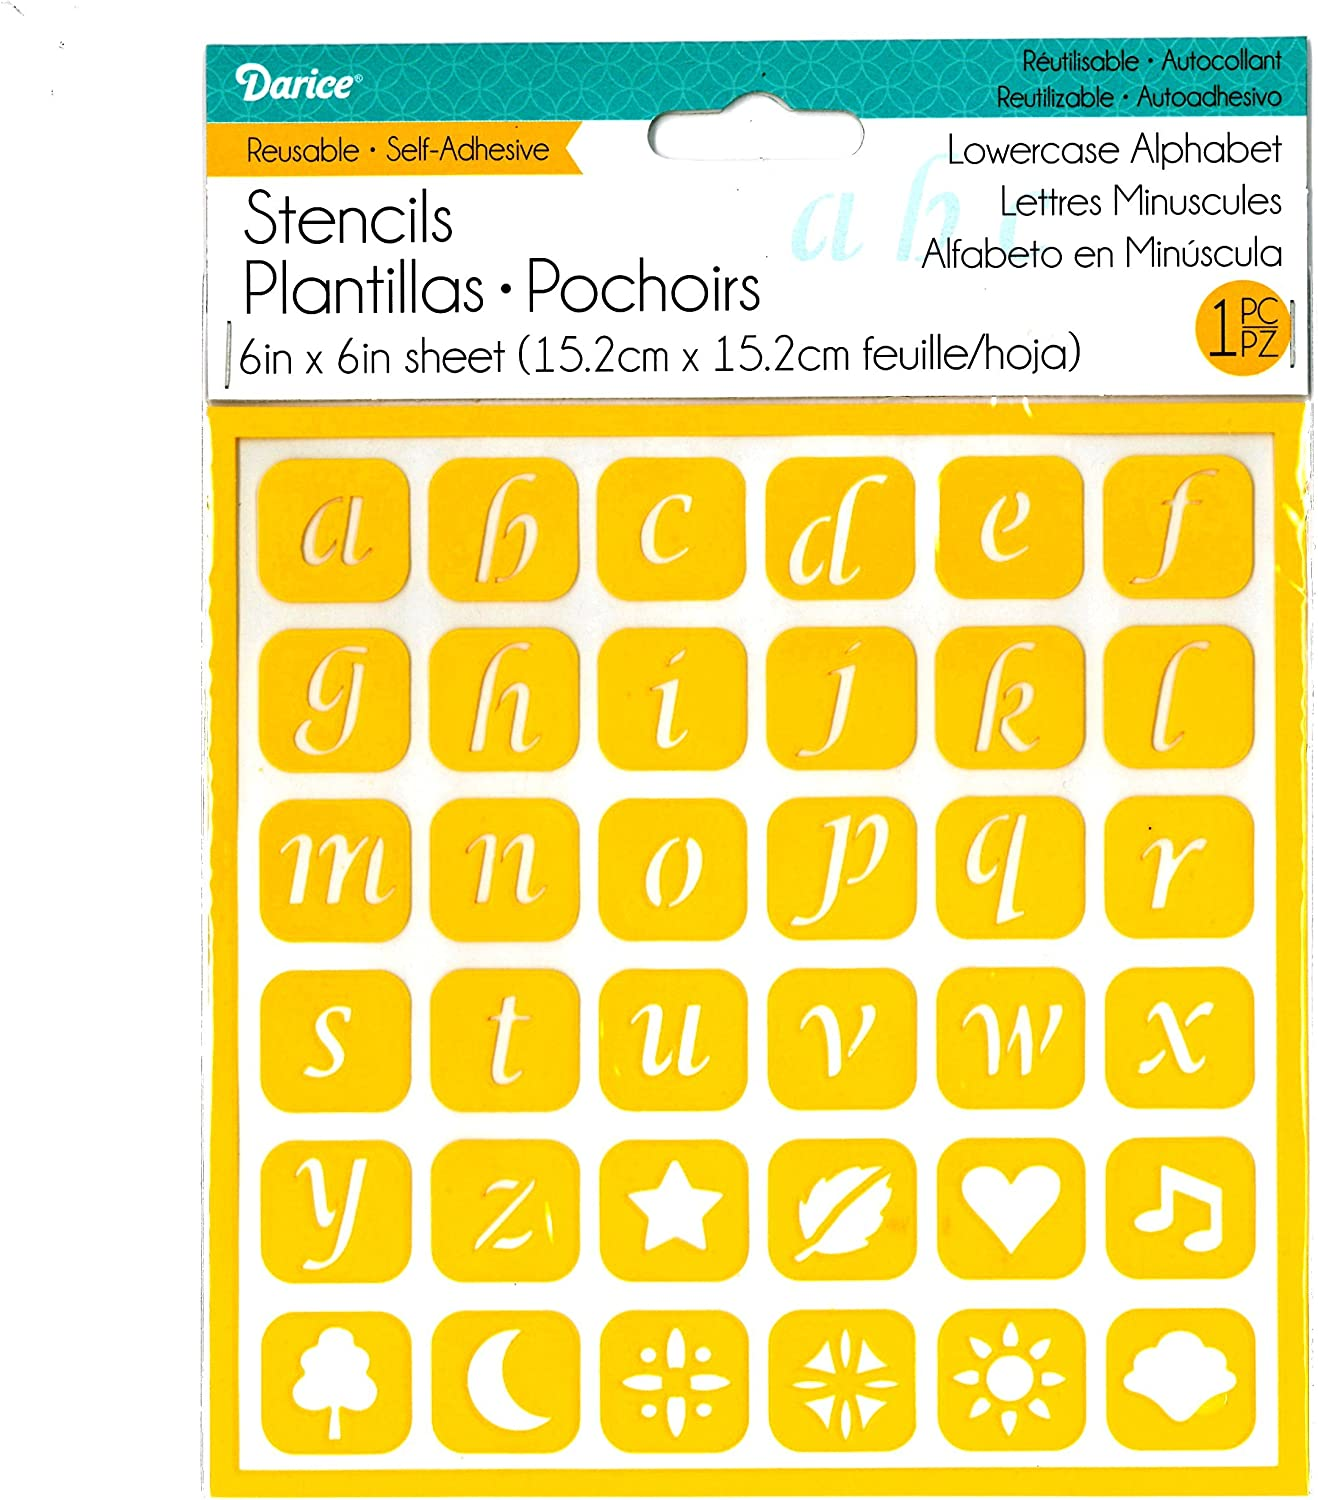 Darice 6 by 6 Self Adhesive Stencil Uppercase Alphabet